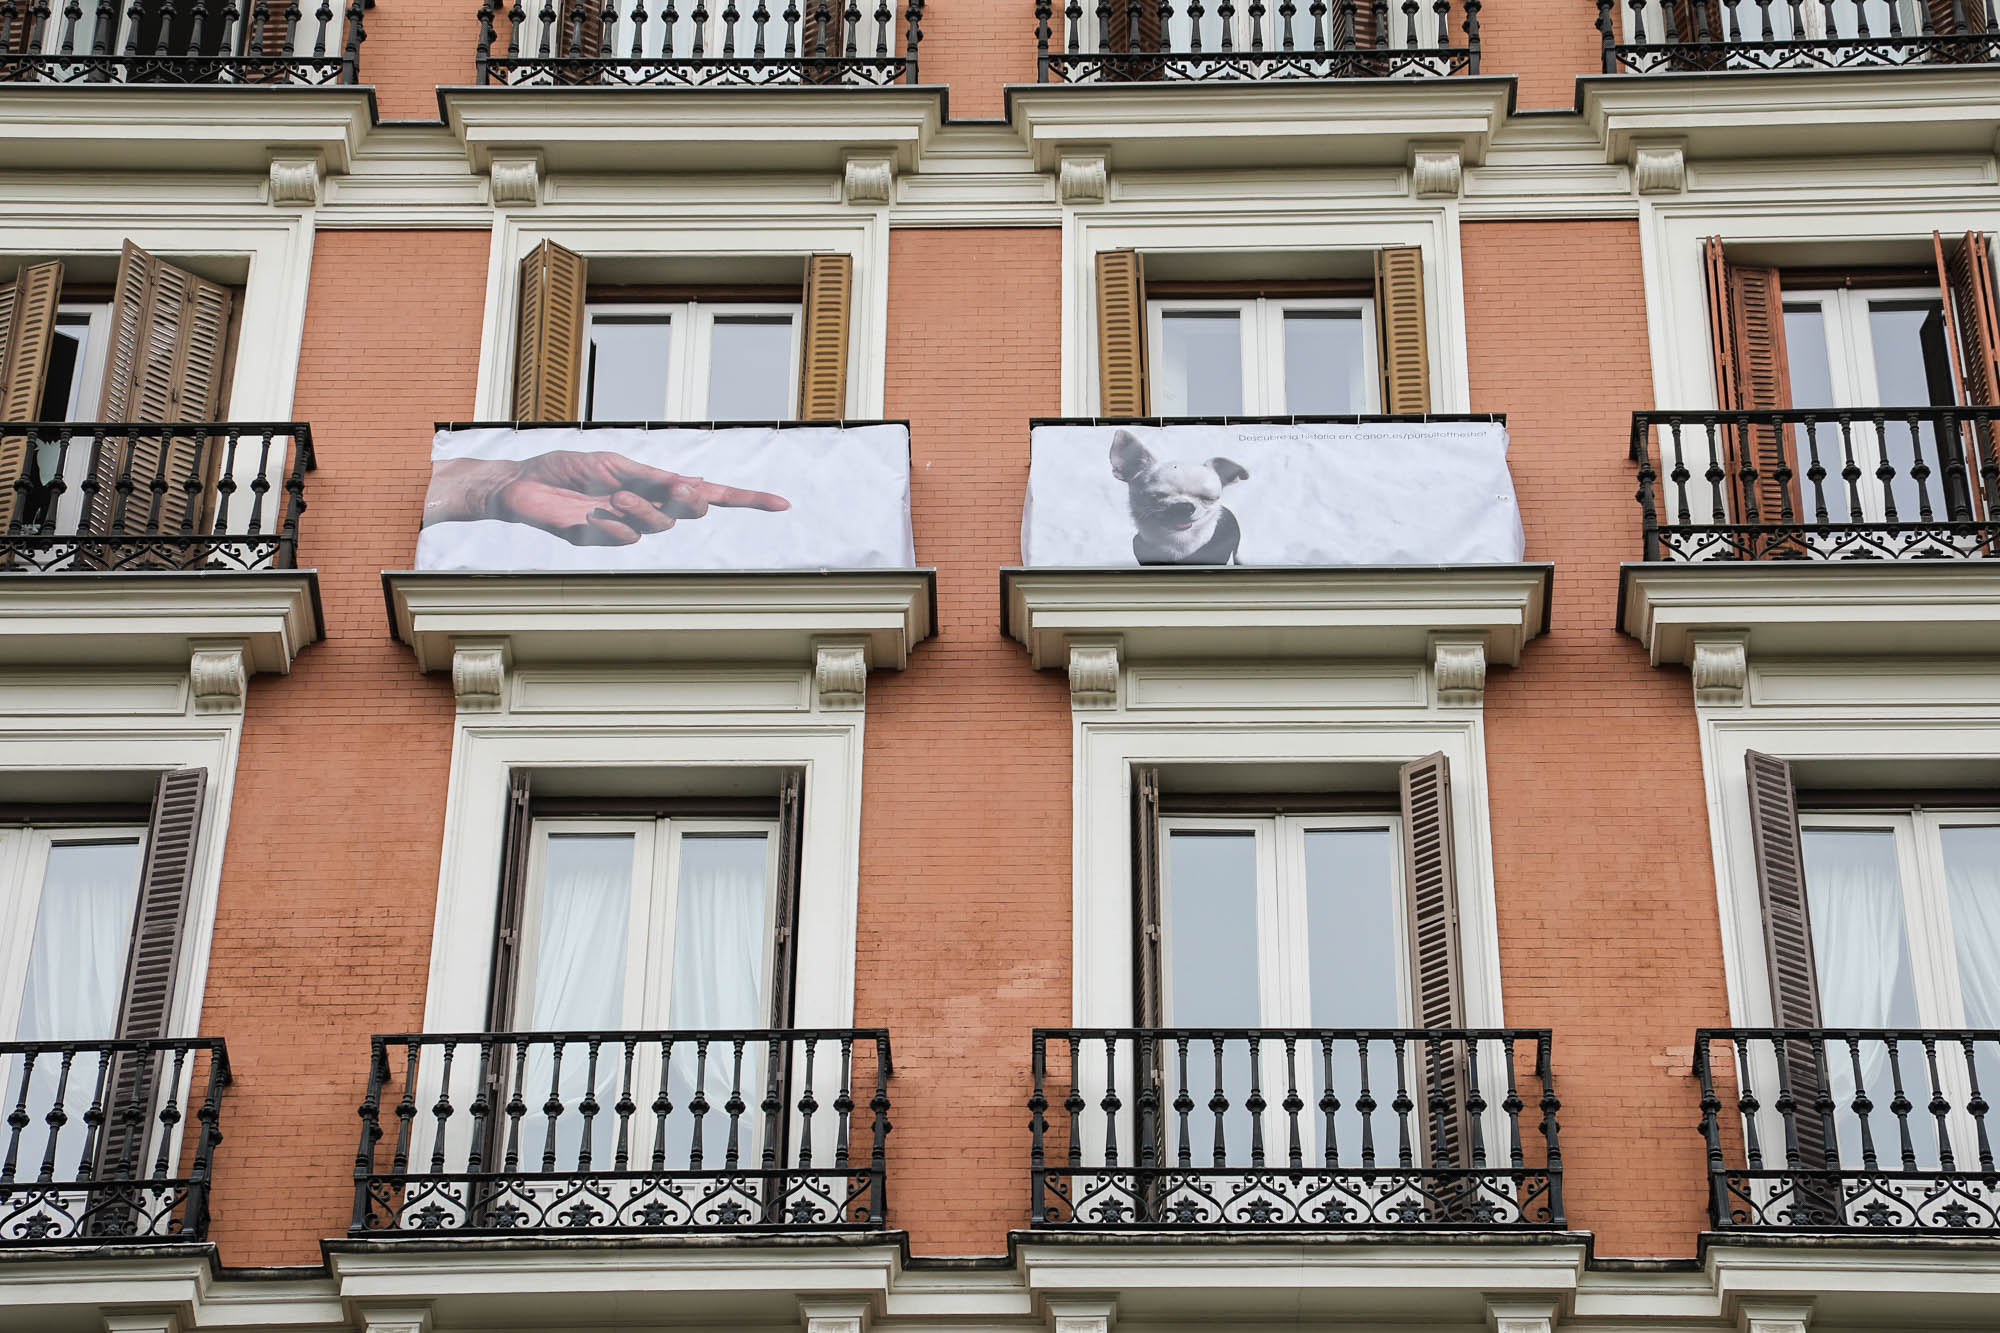 Canon Europe - Wider Image Campaign, Madrid